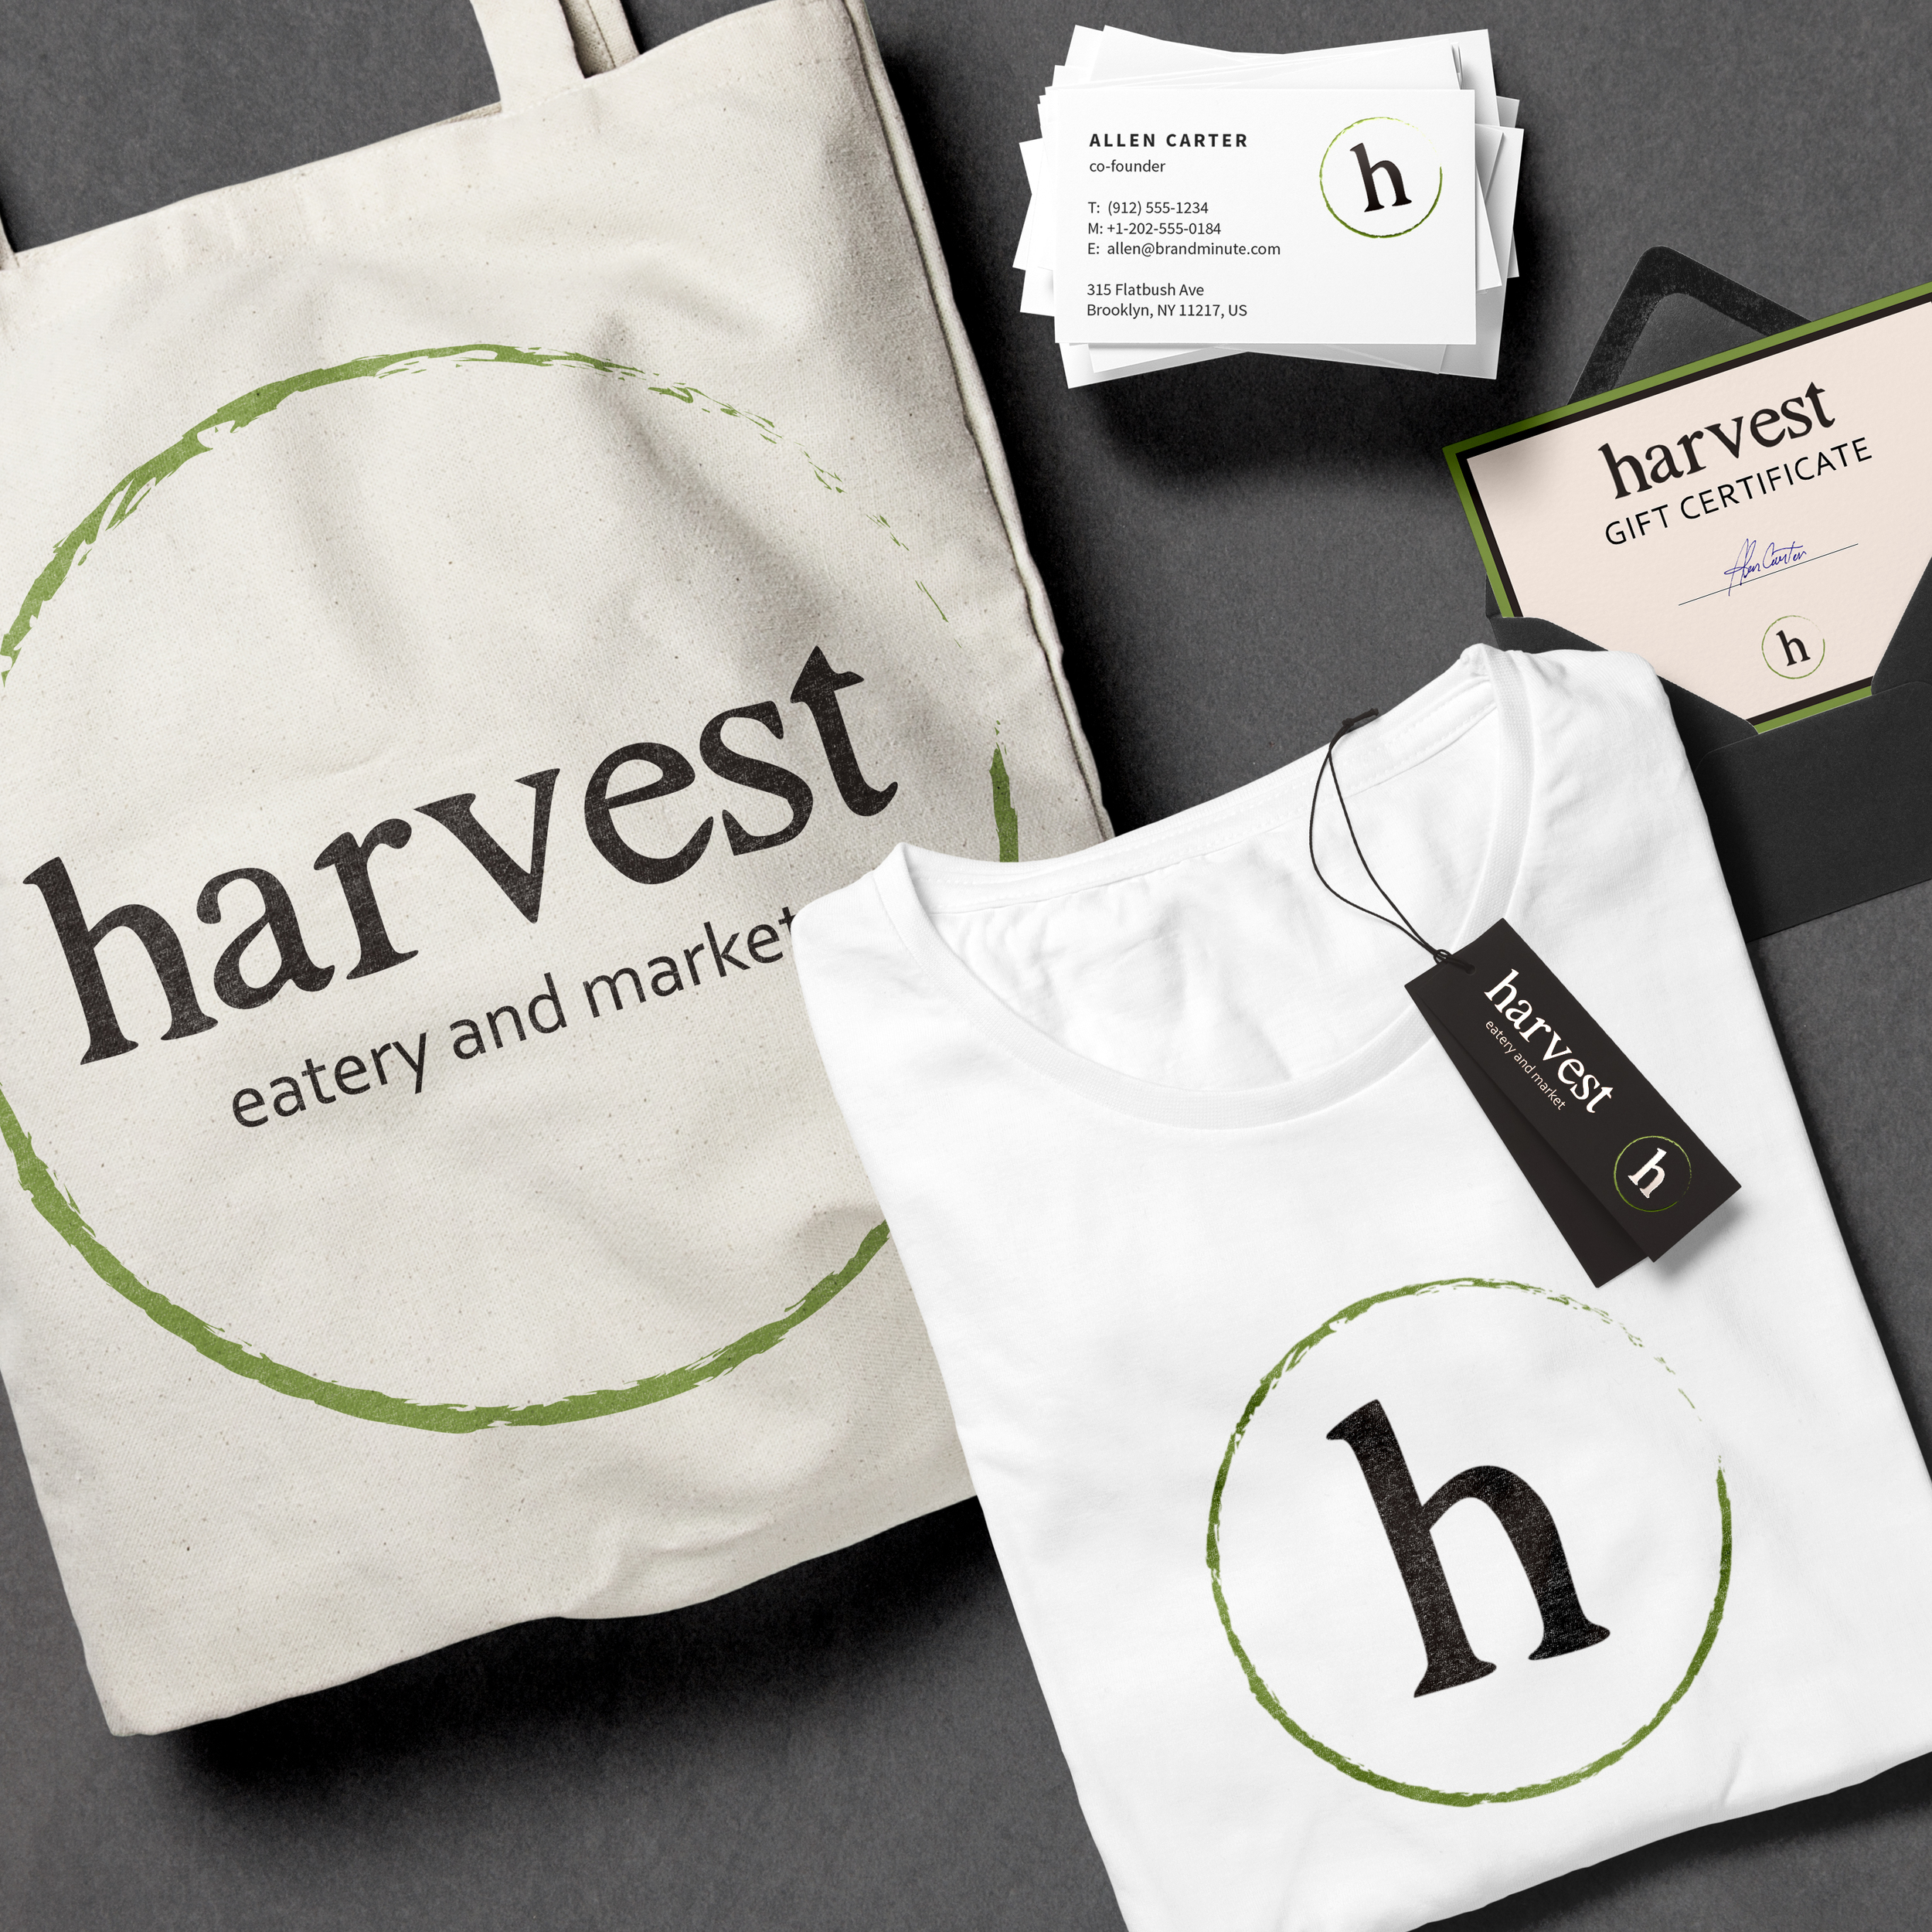 Harvest Eatery and Market | Lemon and the Sea: Brand touchpoints including business cards, bags, t-shirts, and stationary.